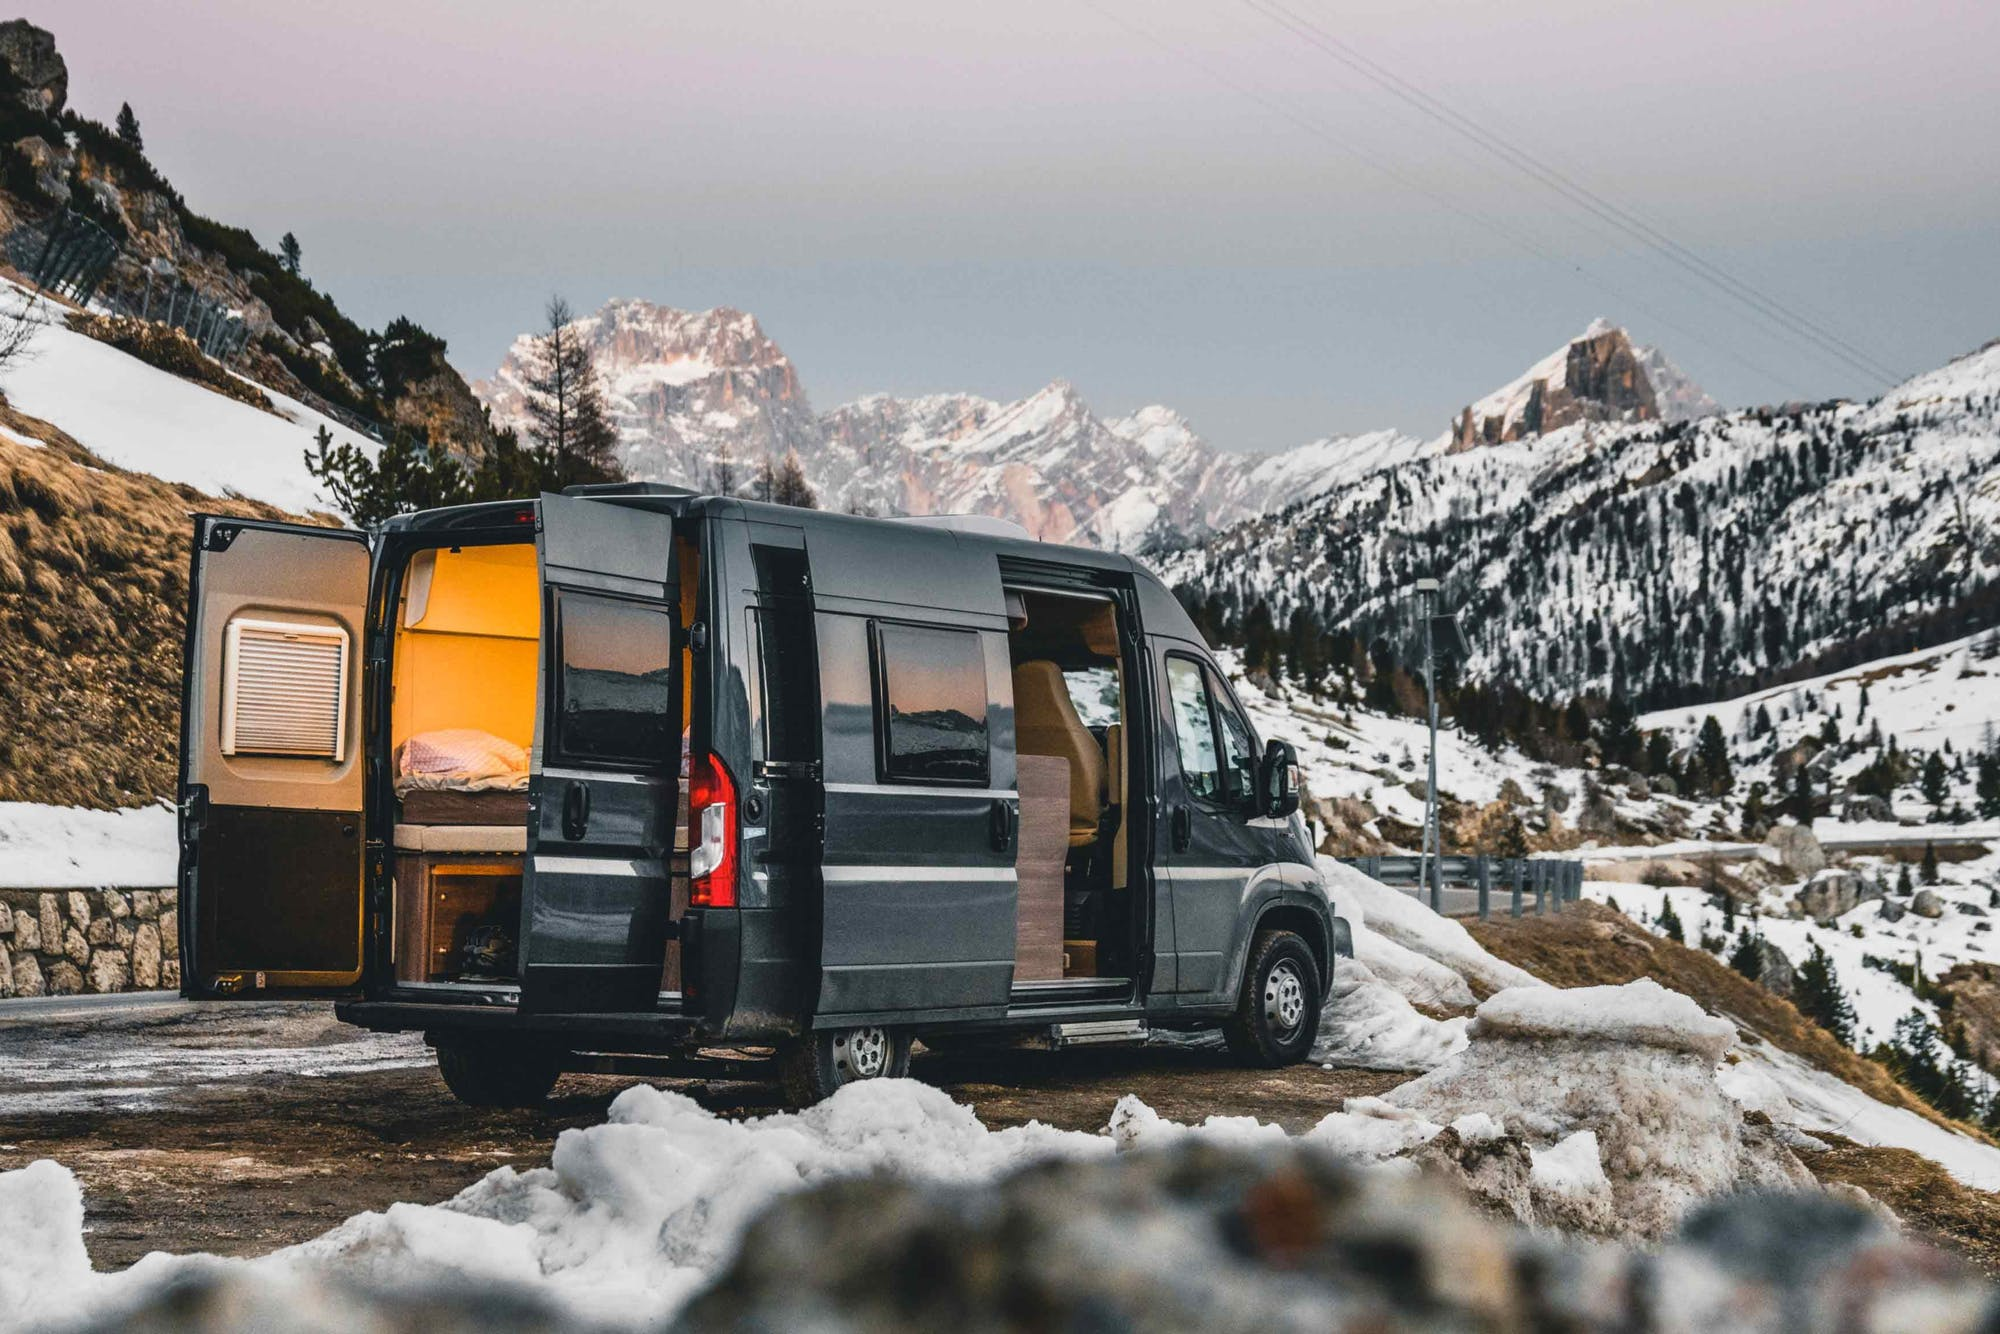 Indie Campers Nomad campervan sourrounded by snowy mountains